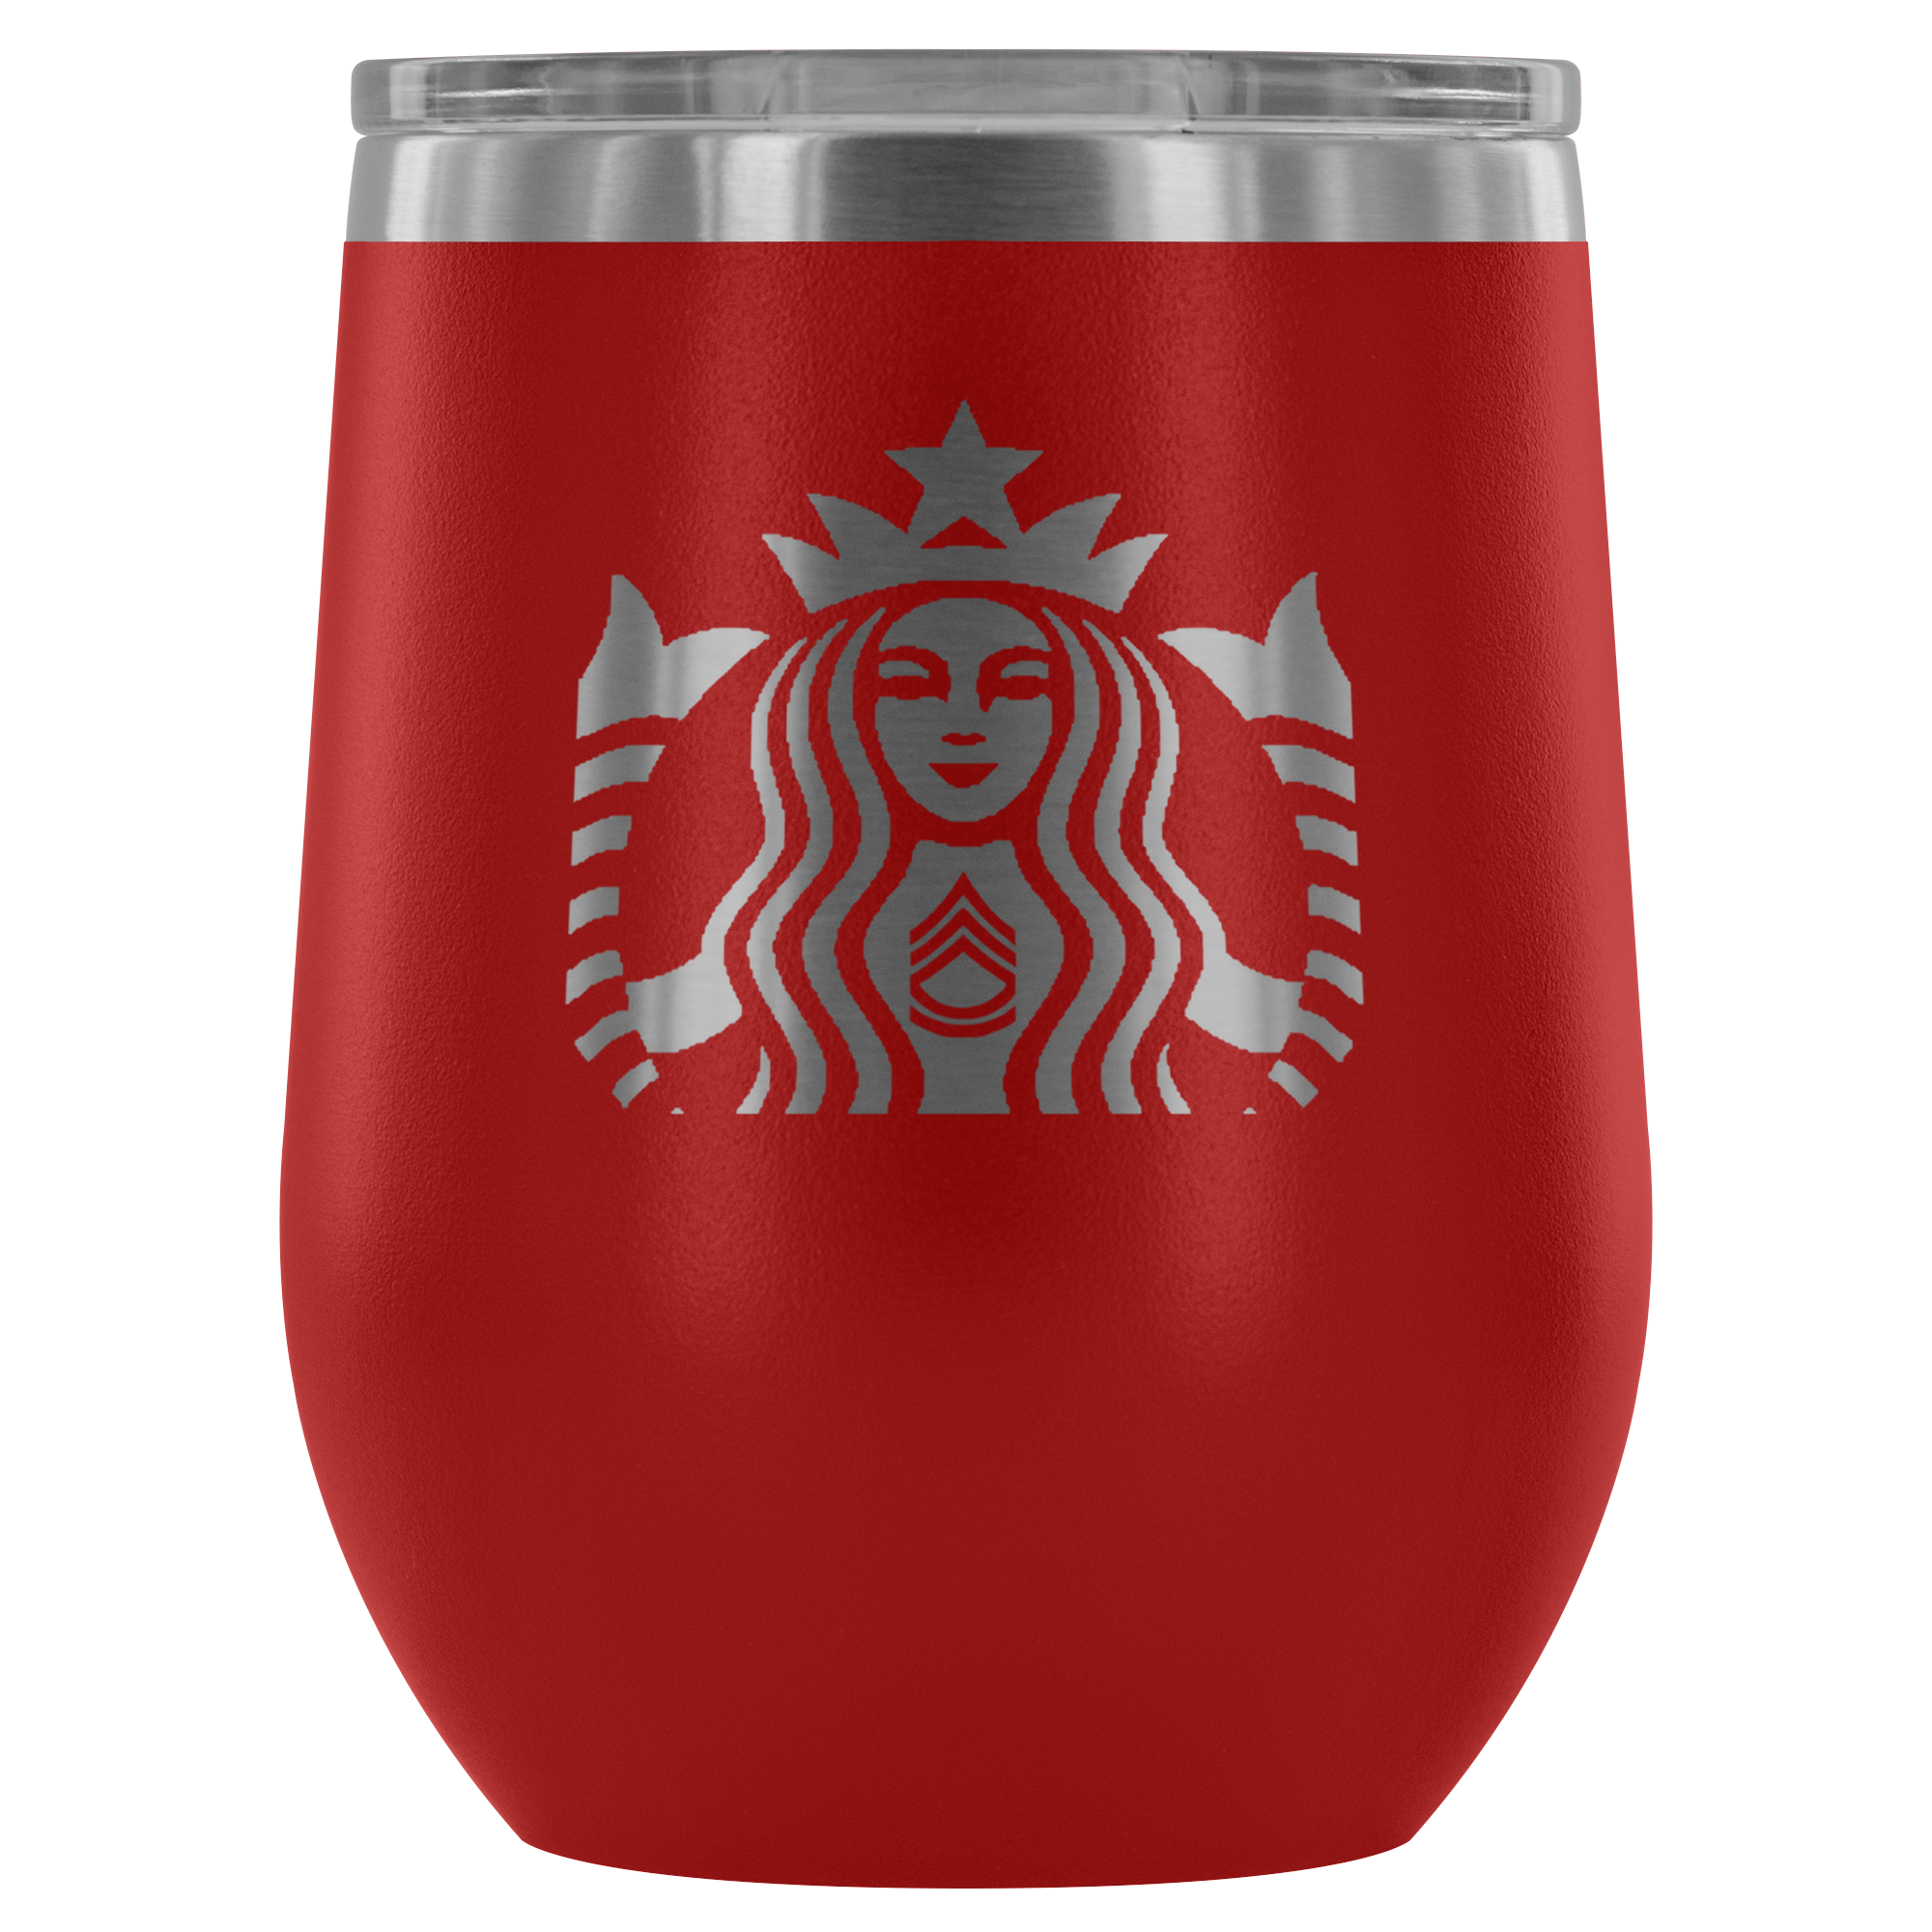 SFC - Starbucks 12oz Tumbler